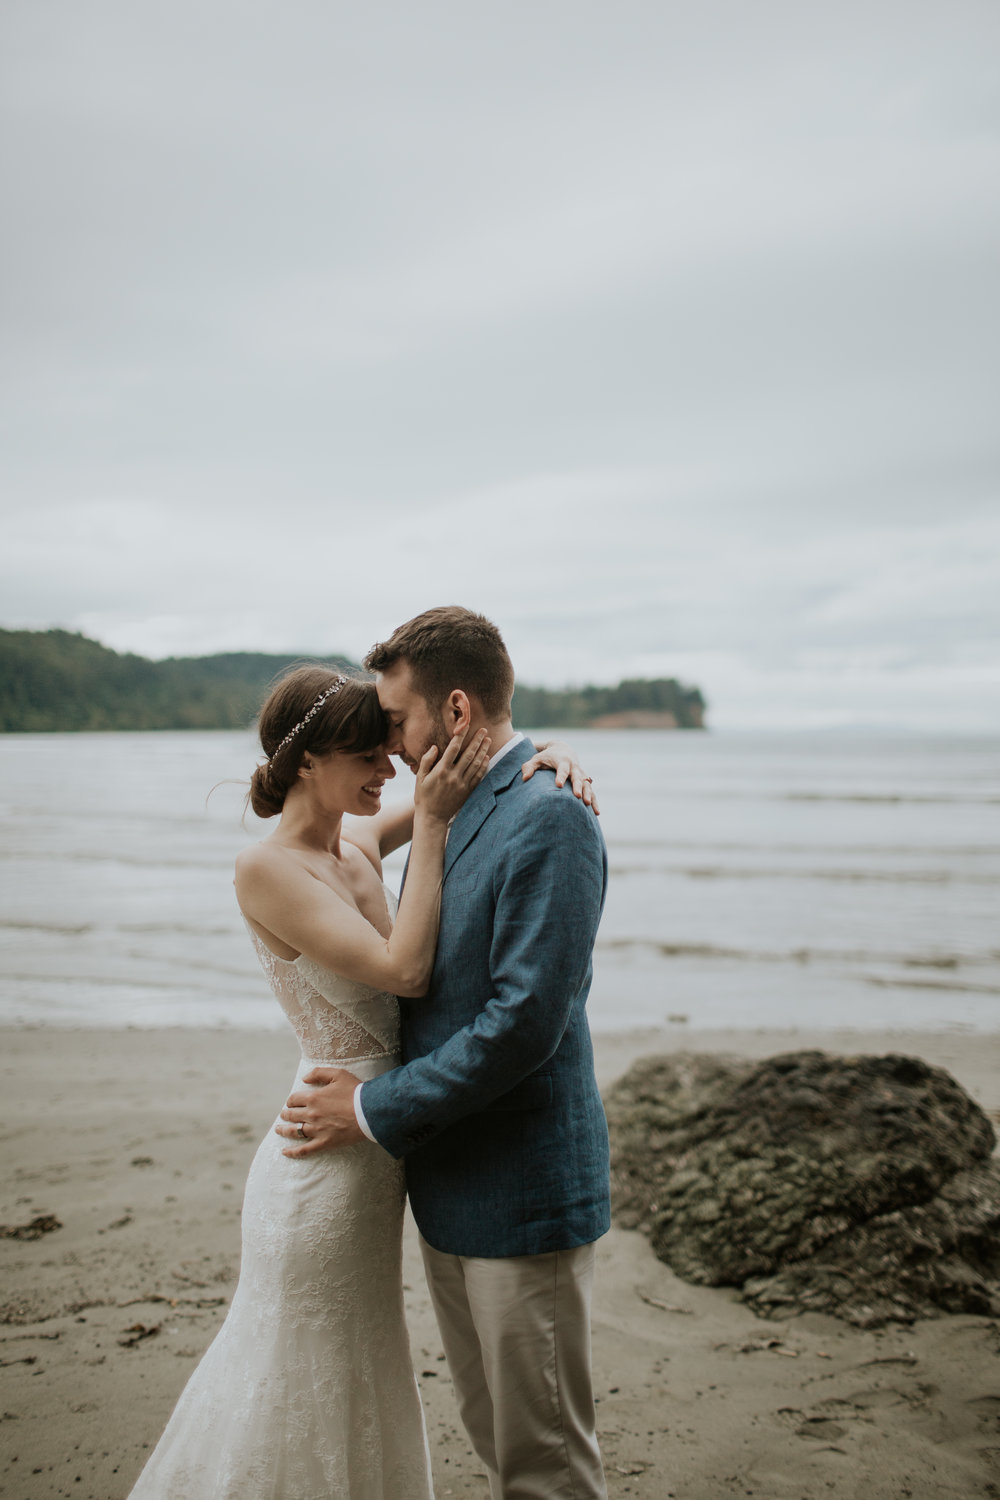 PNW-elopement-wedding-engagement-olympic national park-port angeles-hurricane ridge-lake crescent-kayla dawn photography- photographer-photography-kayladawnphoto-291.jpg